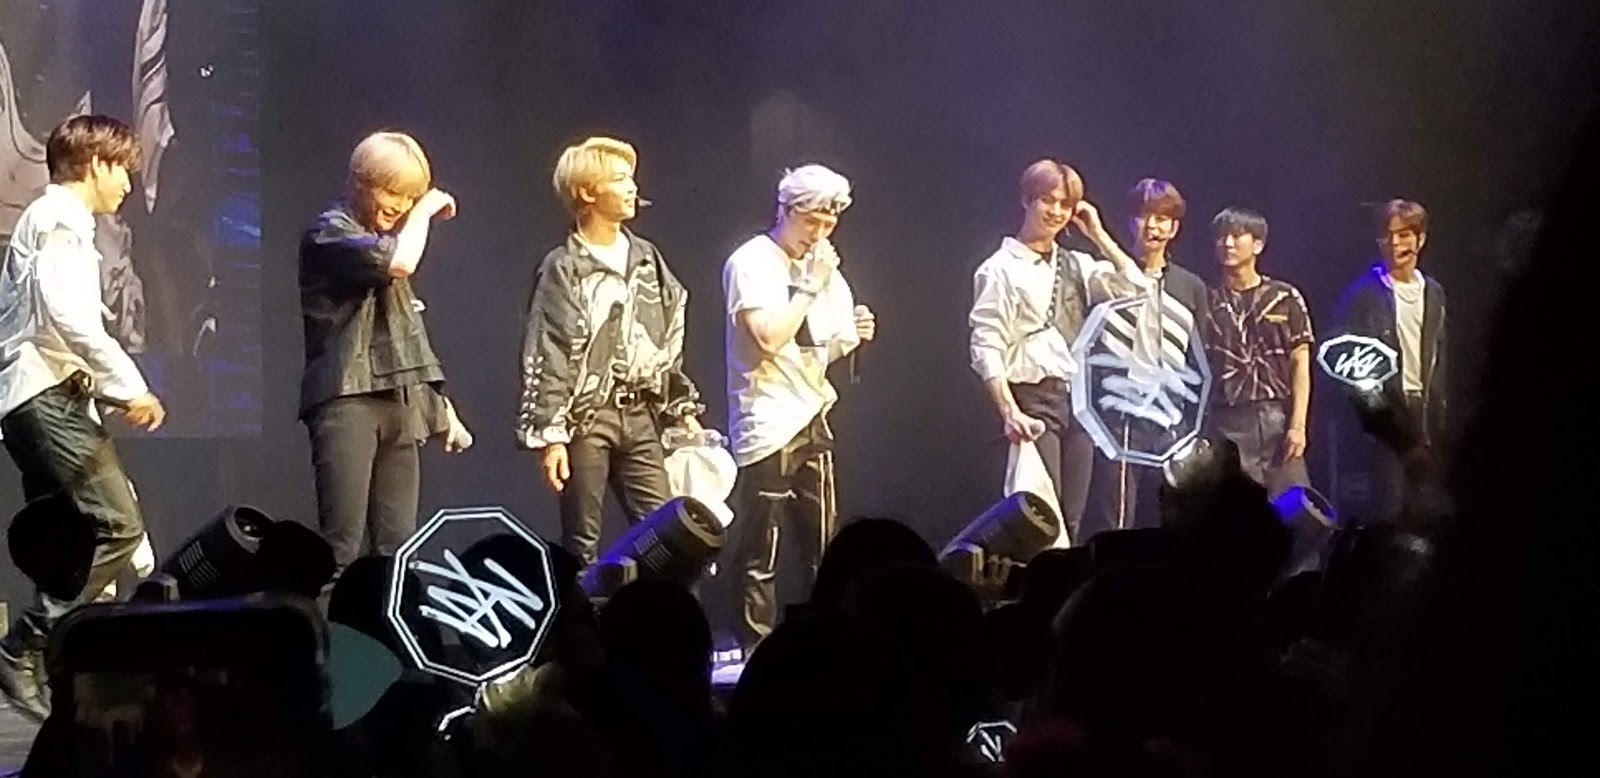 It's All About Books: Concert Review: STRAY KIDS in LA May 17, 2019